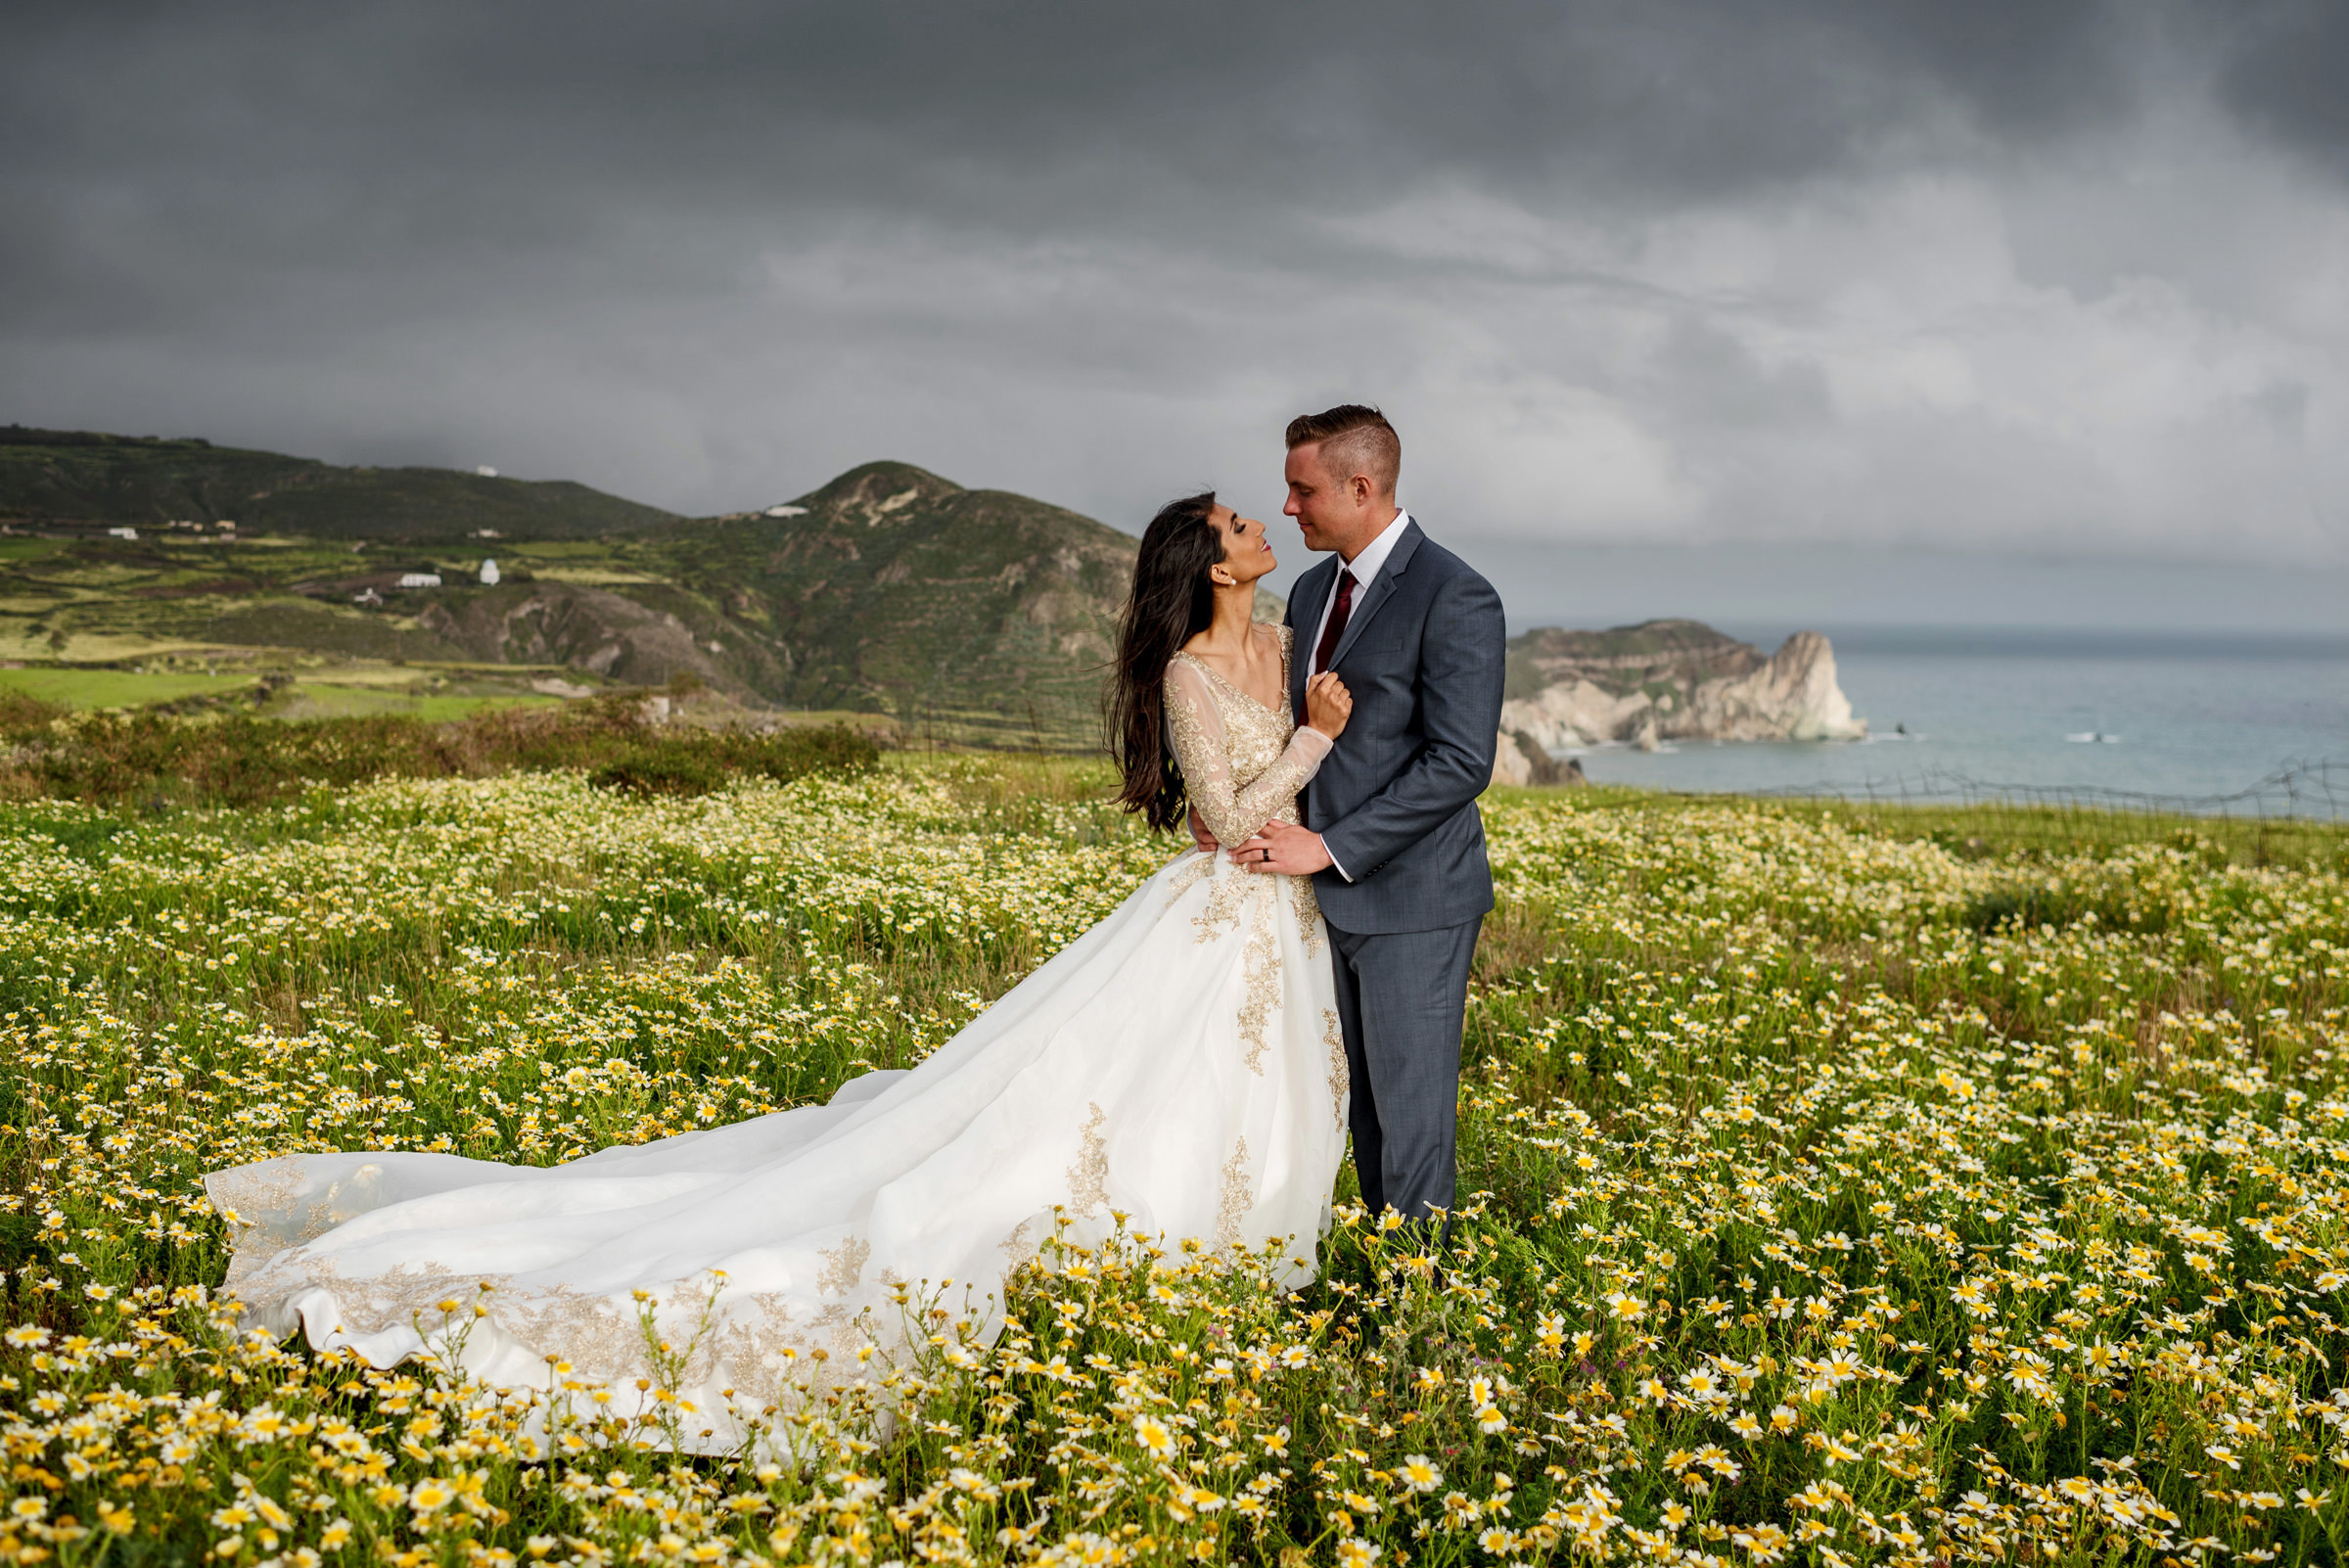 Couple in epic field of flowers against cliffs - photo by Barbie Hull Photography